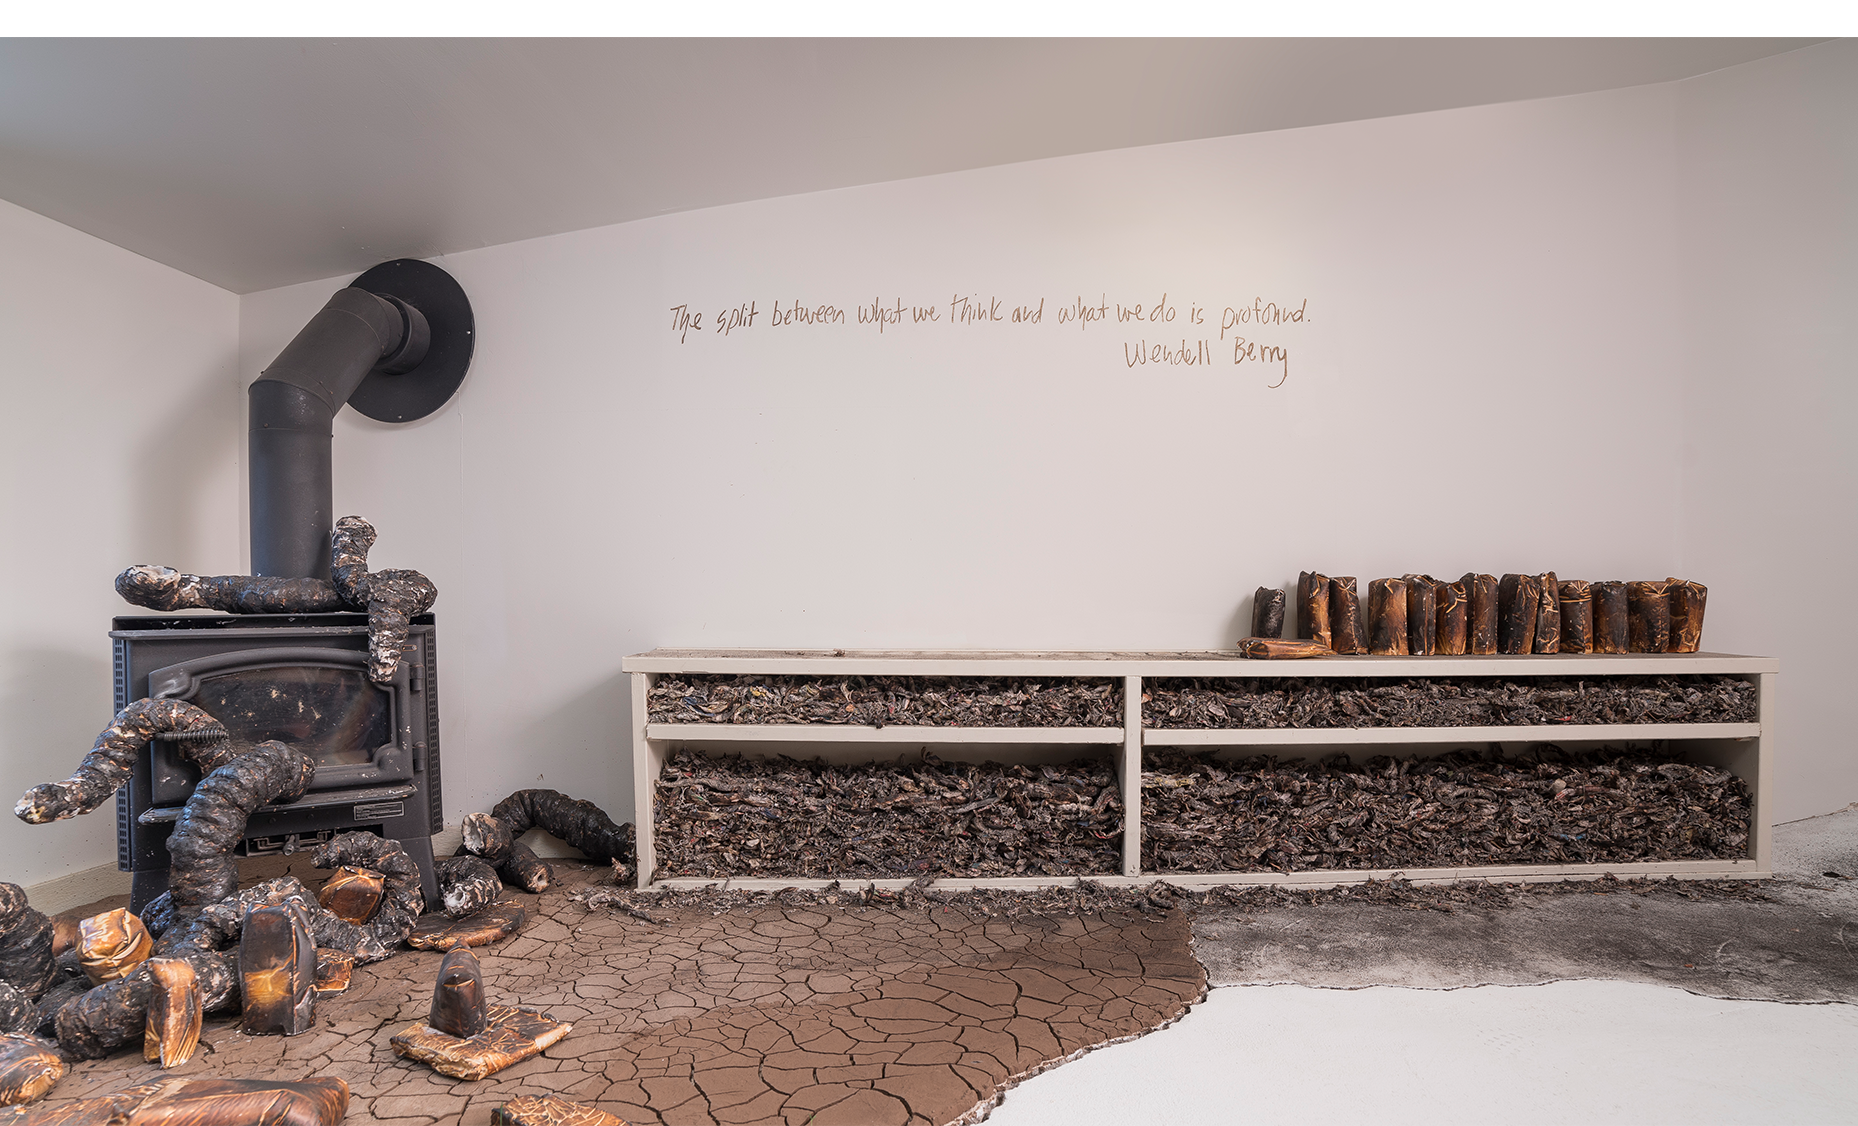 Installation detail with wood burning stove, charred newspaper fragments rammed into bookshelf, and cast plaster organic forms with charred consumer goods casts, cracked earth and ash. Wall texts drawn in Kansas mud, Wendell Berry.